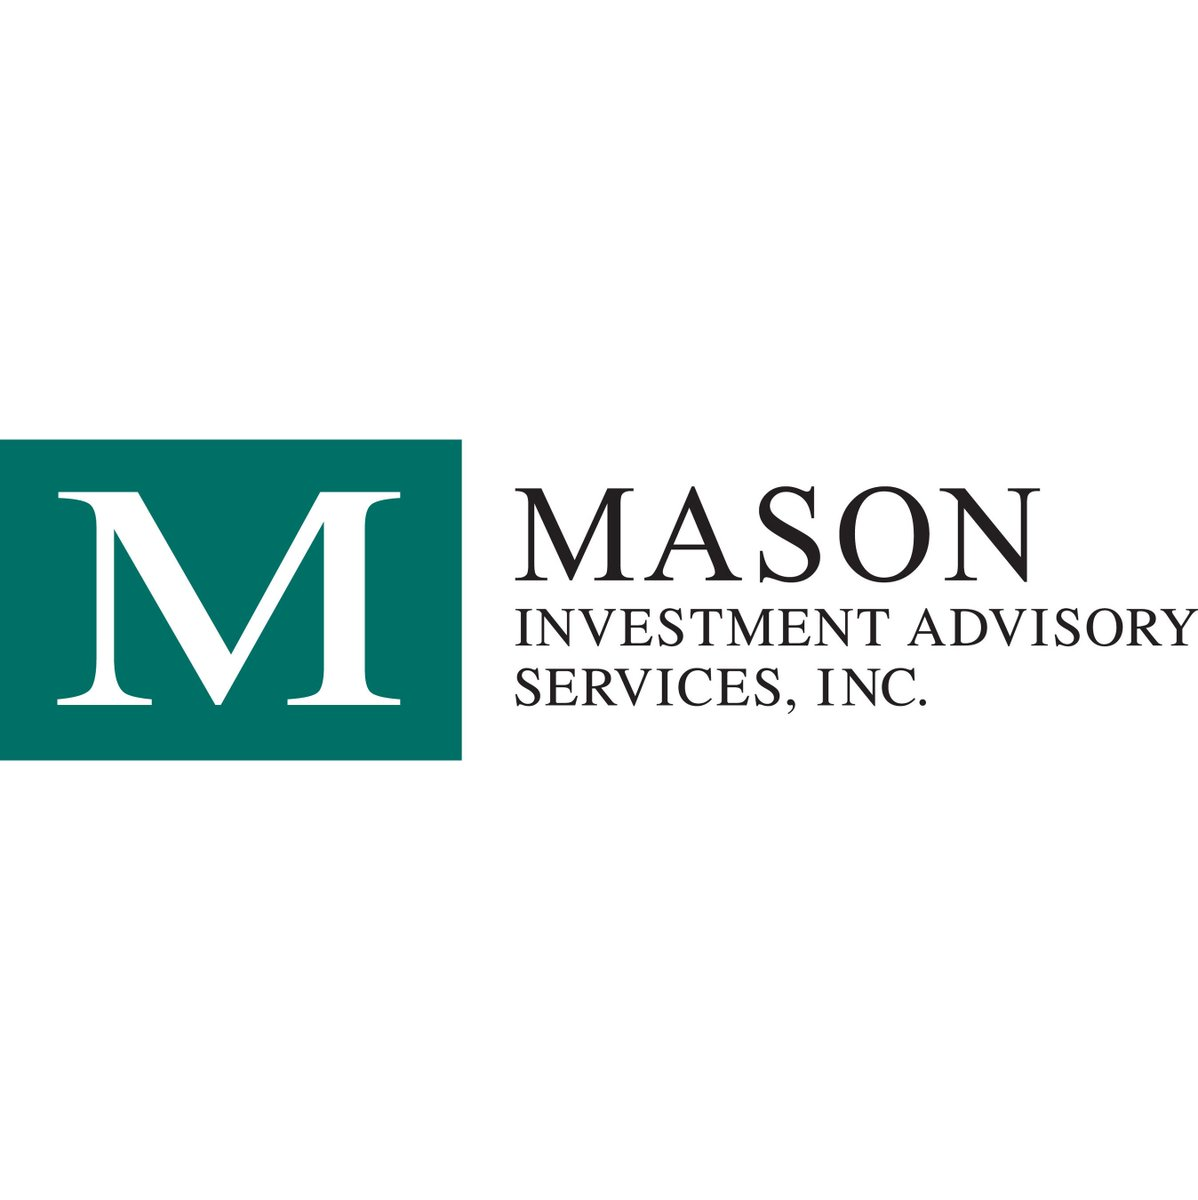 Barron's Lists Mason Investment Advisory Services as a Top 50 Registered Investment Advisor prn.to/2lMPPng